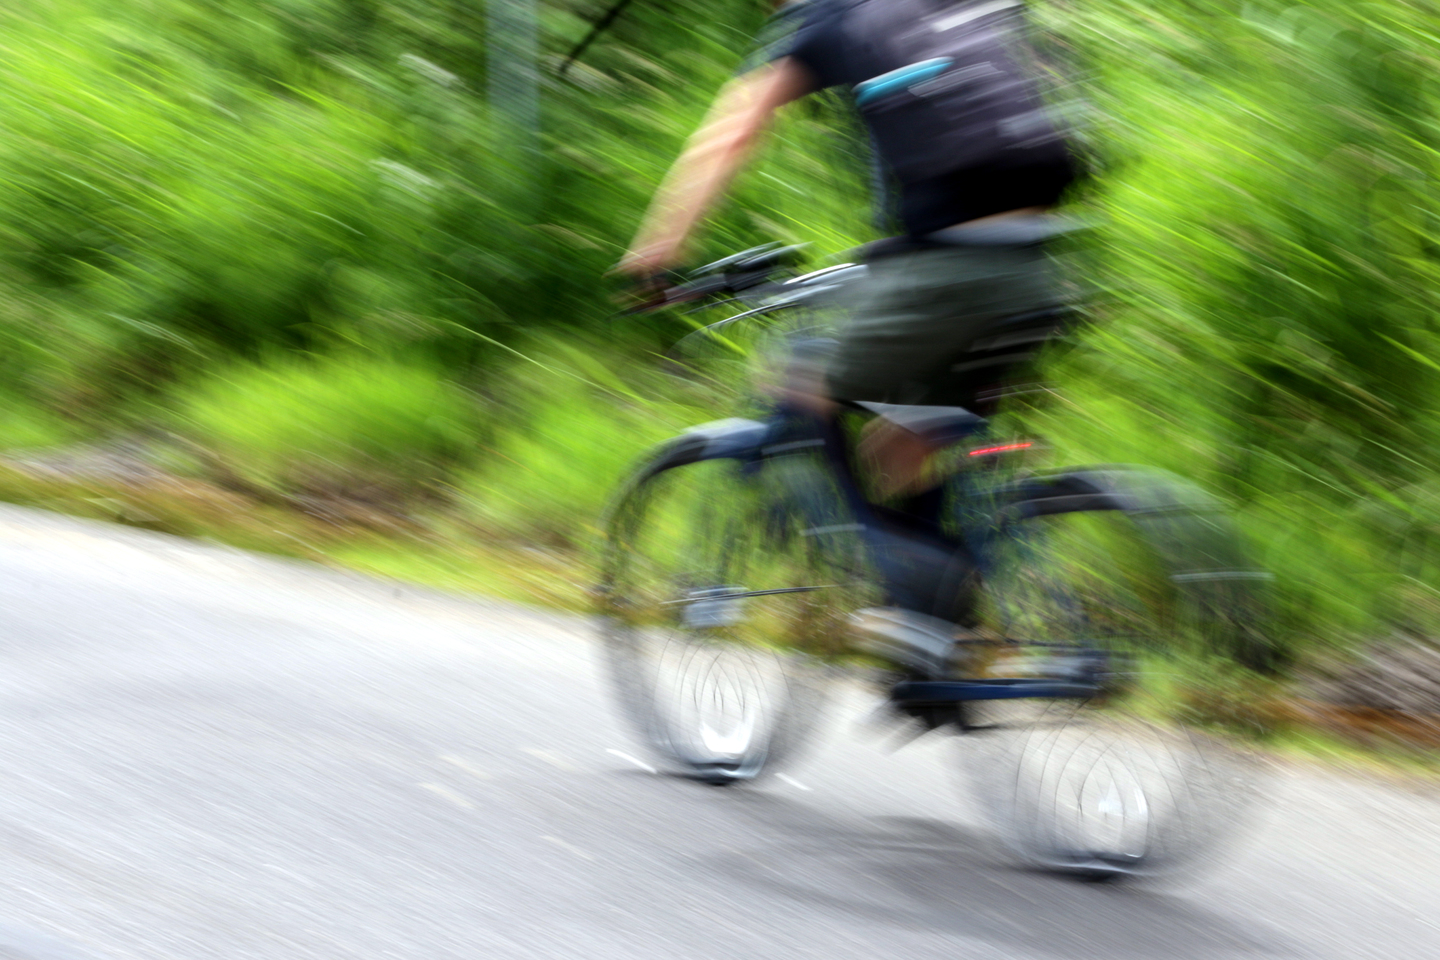 Cyclist_Motion Blur_Sunday Parkway